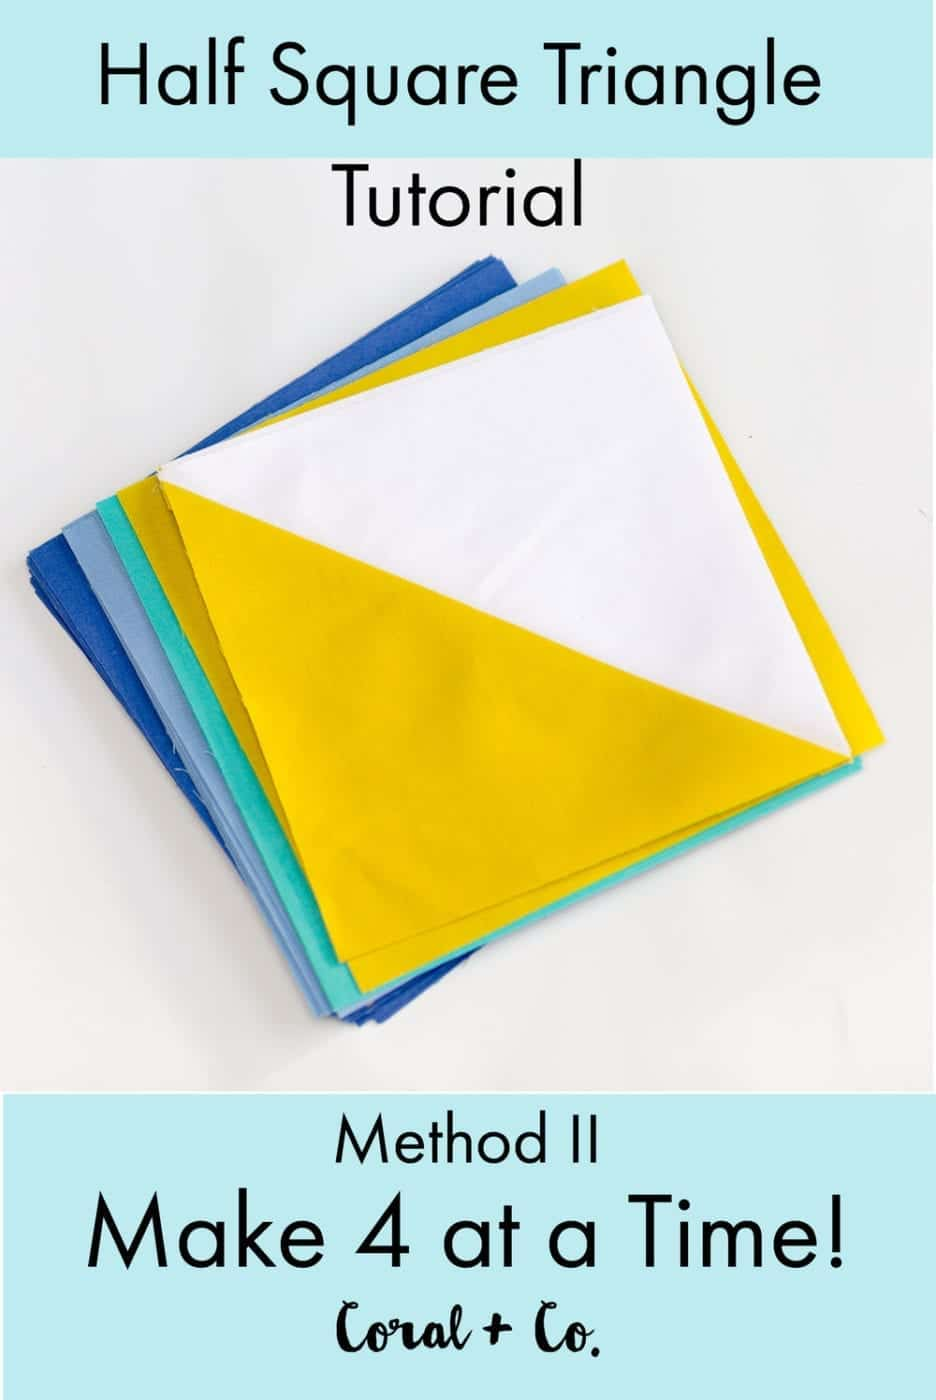 half-square-triangles-4-at-a-time-tutorial-green-and-blue-half-square-triangle-blocks-on-white-background